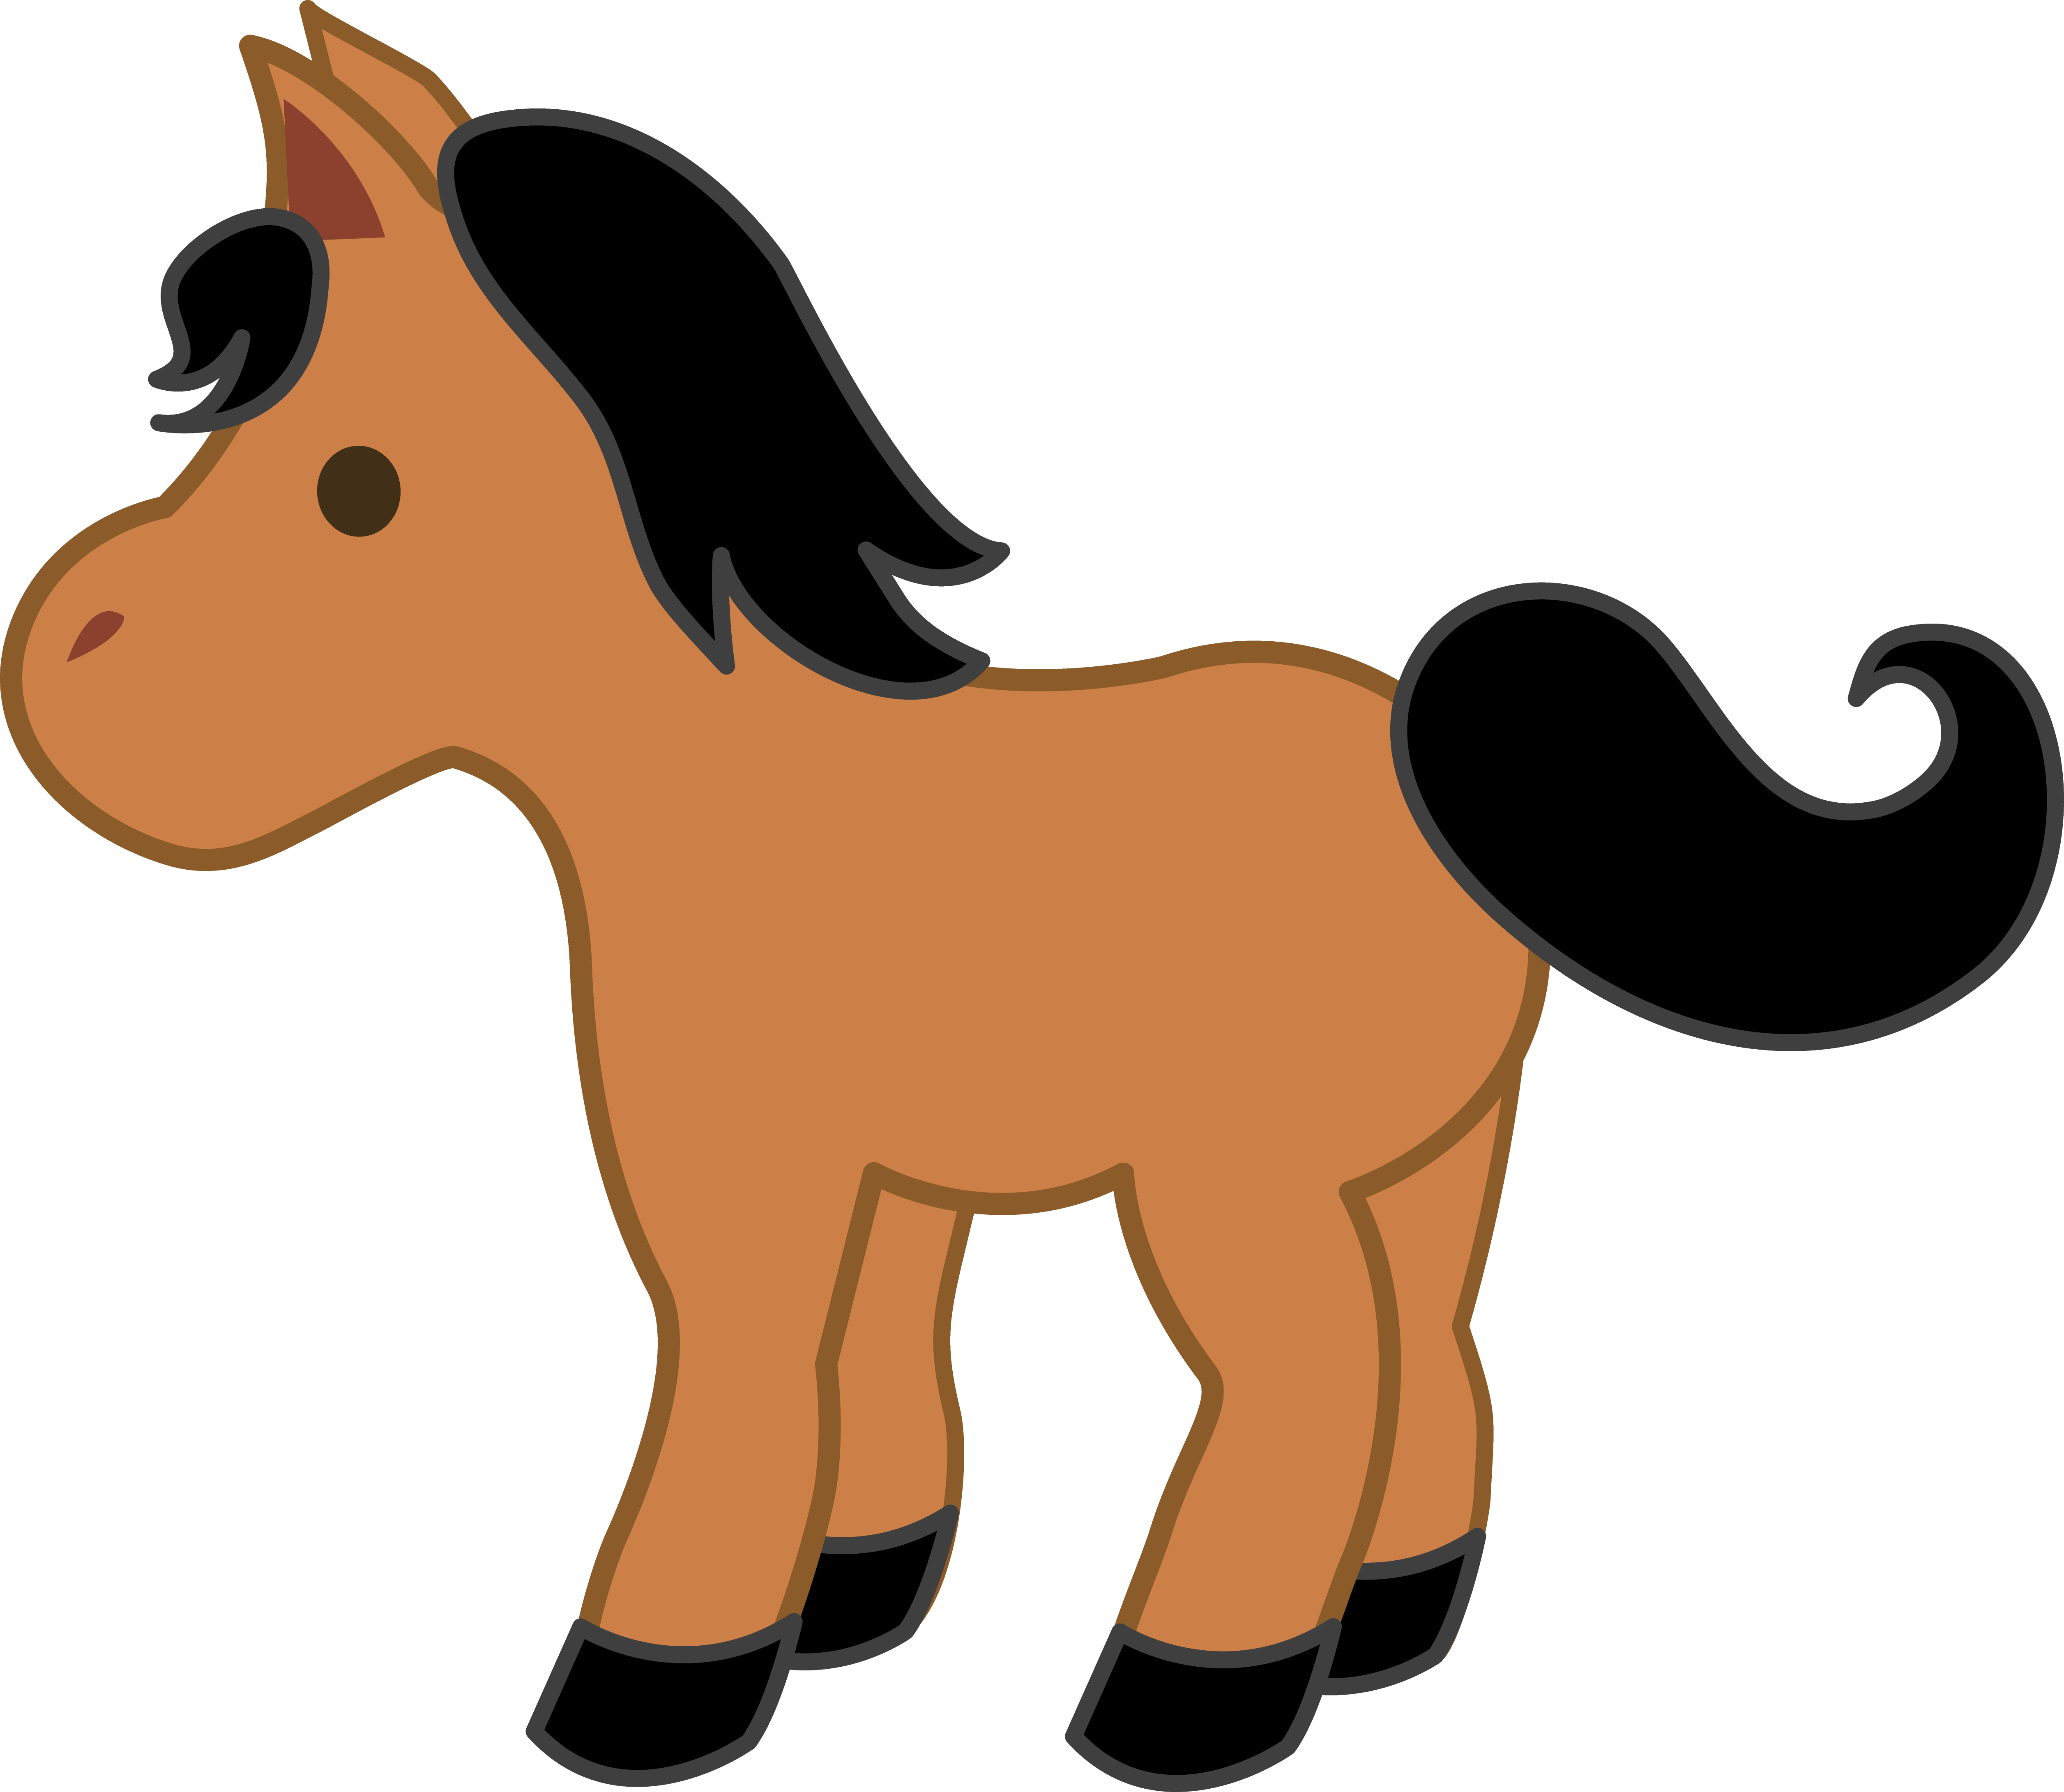 Free pony clipart. To download images